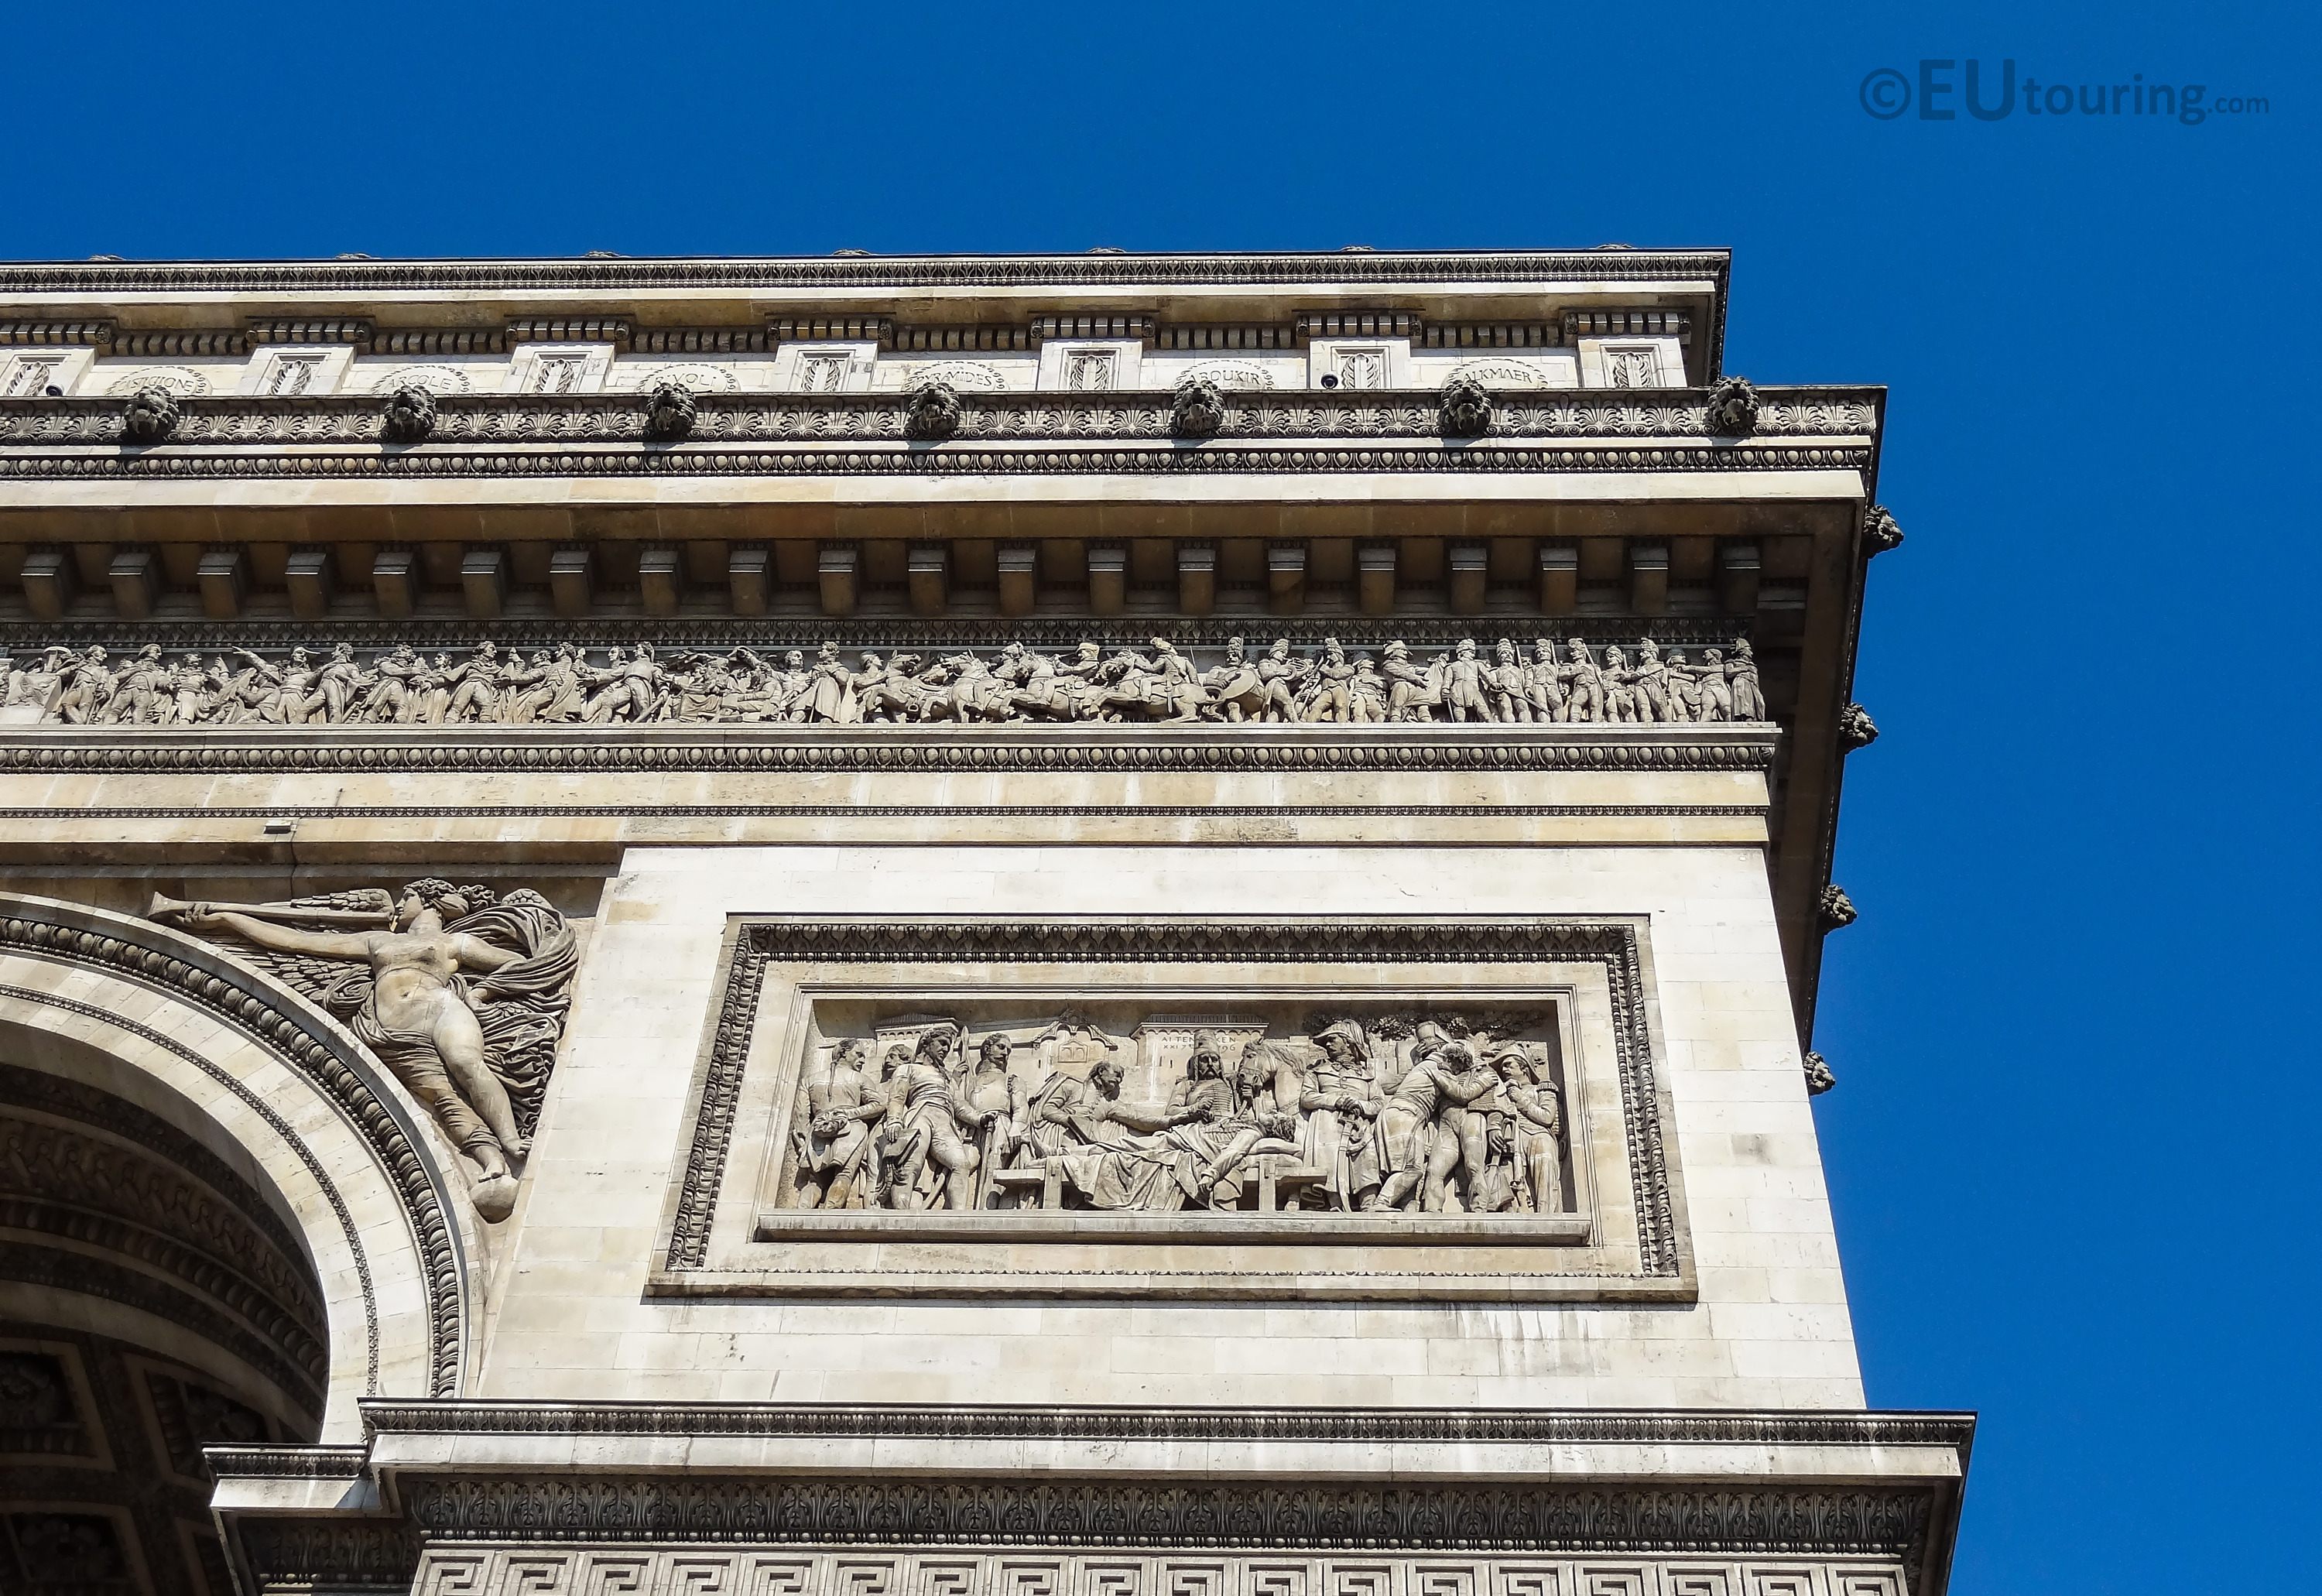 Details of the top corner of the Arc de Triomphe